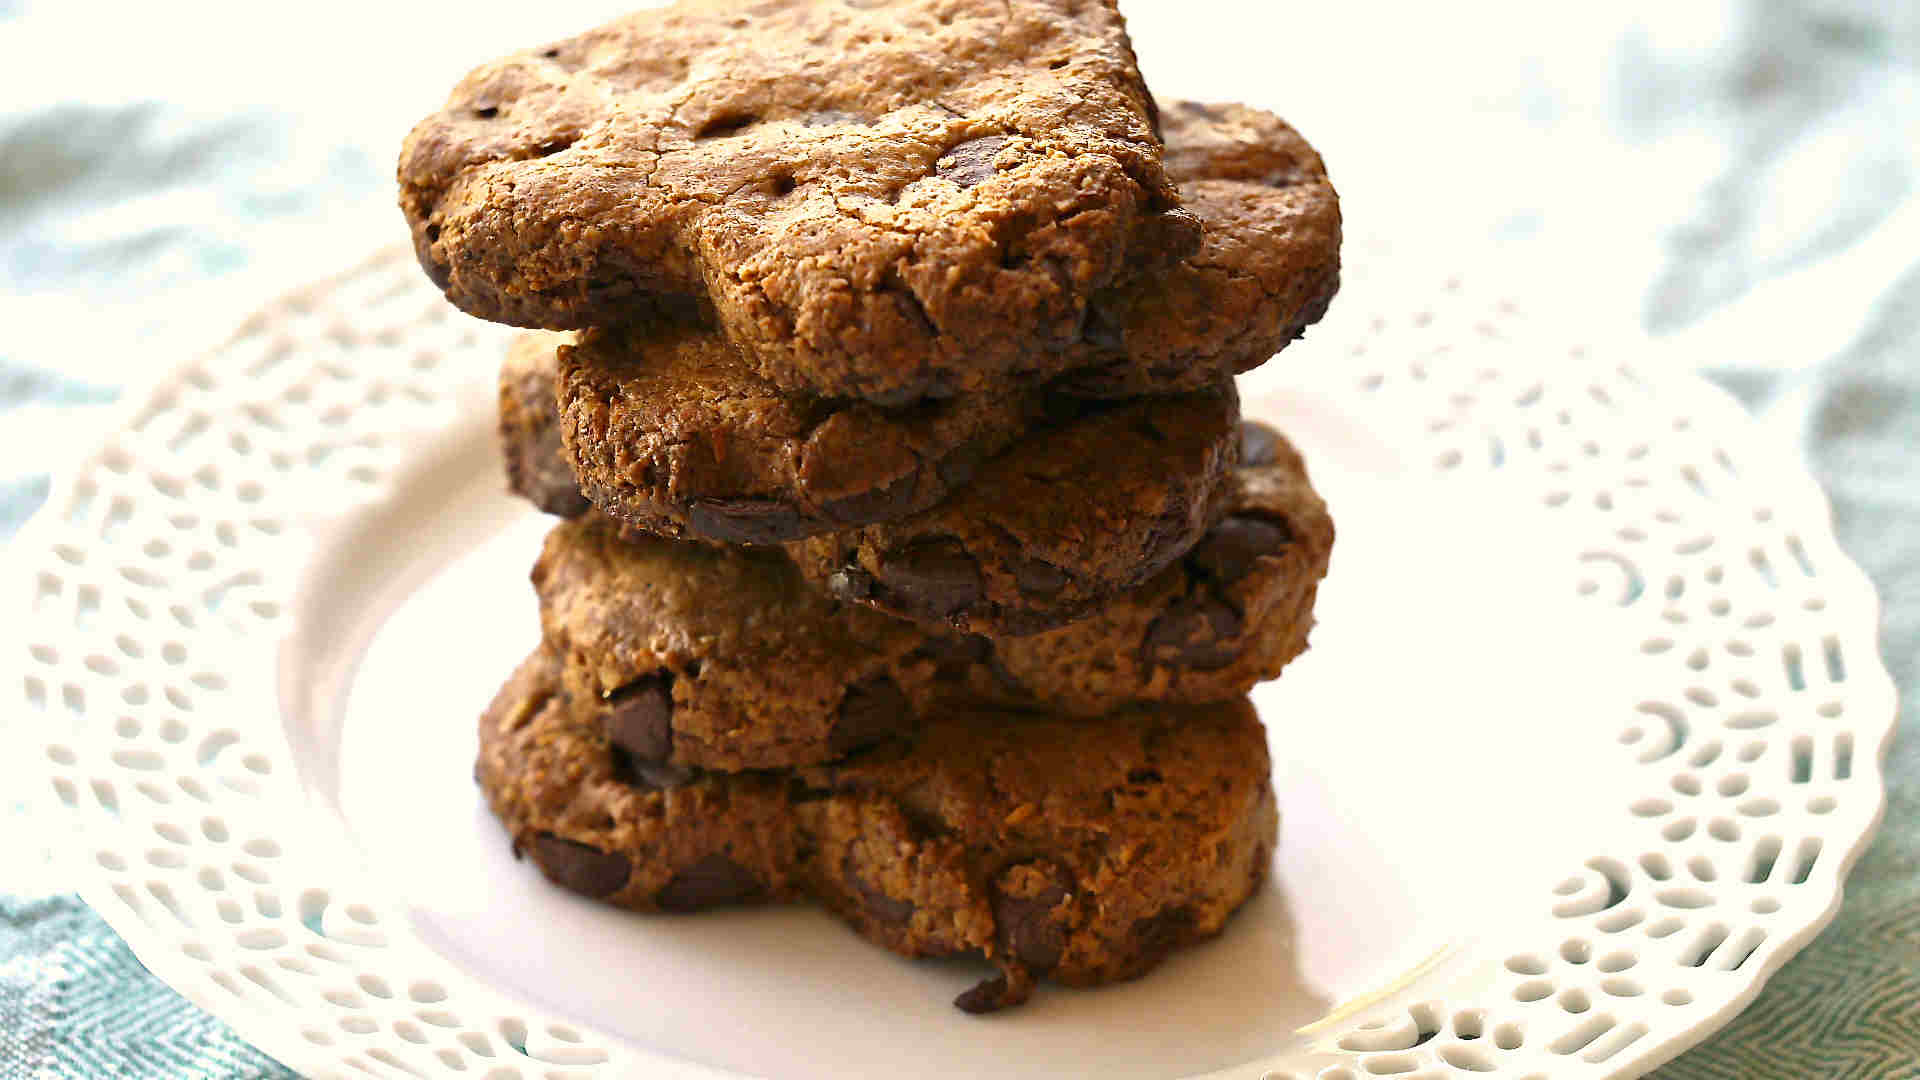 Gluten Free Walnut Coconut Chocolate Chunkies